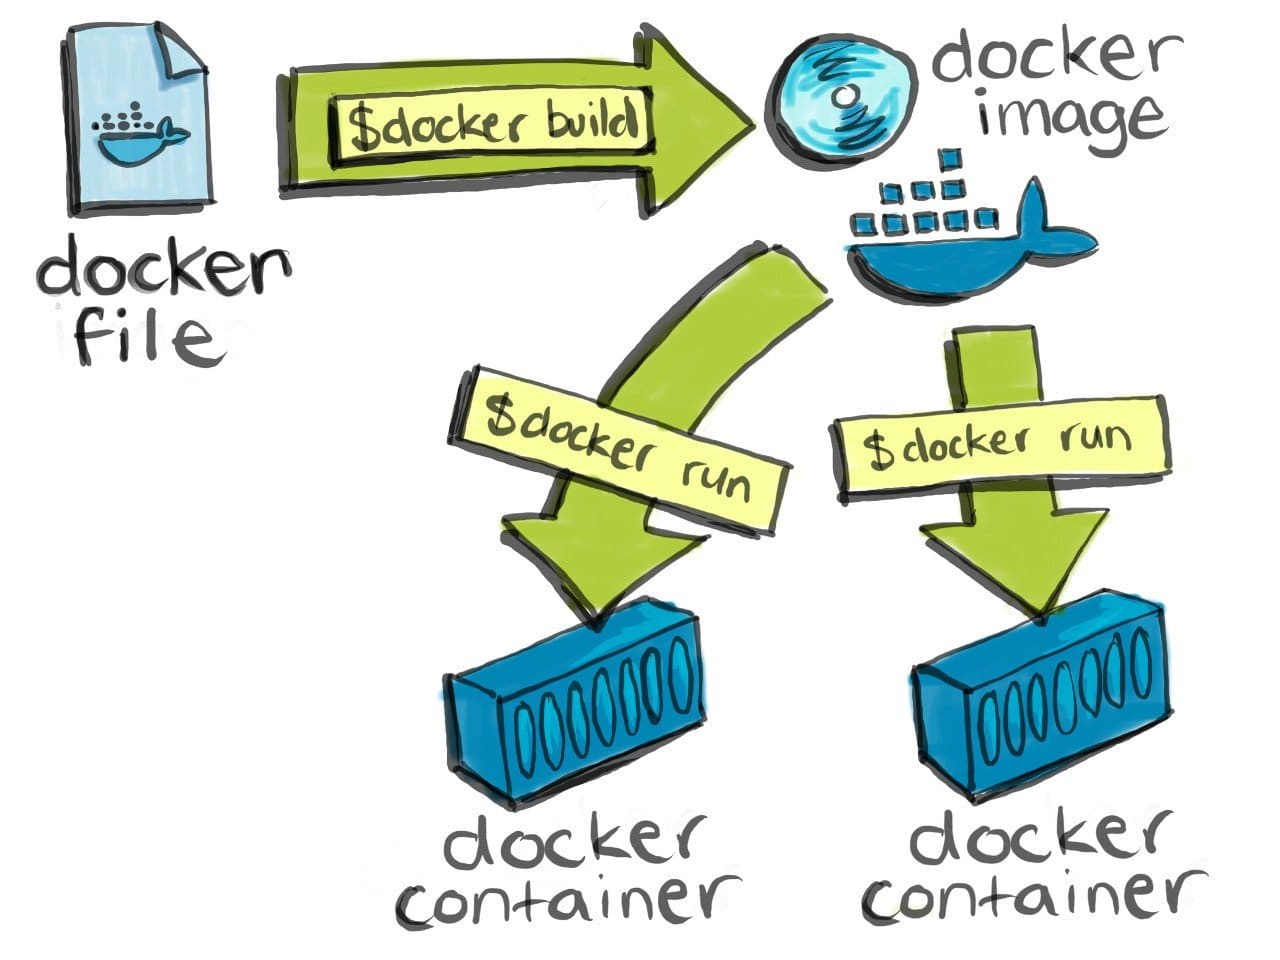 Building a docker image shown with arrows on a white board - Docker Interview questions